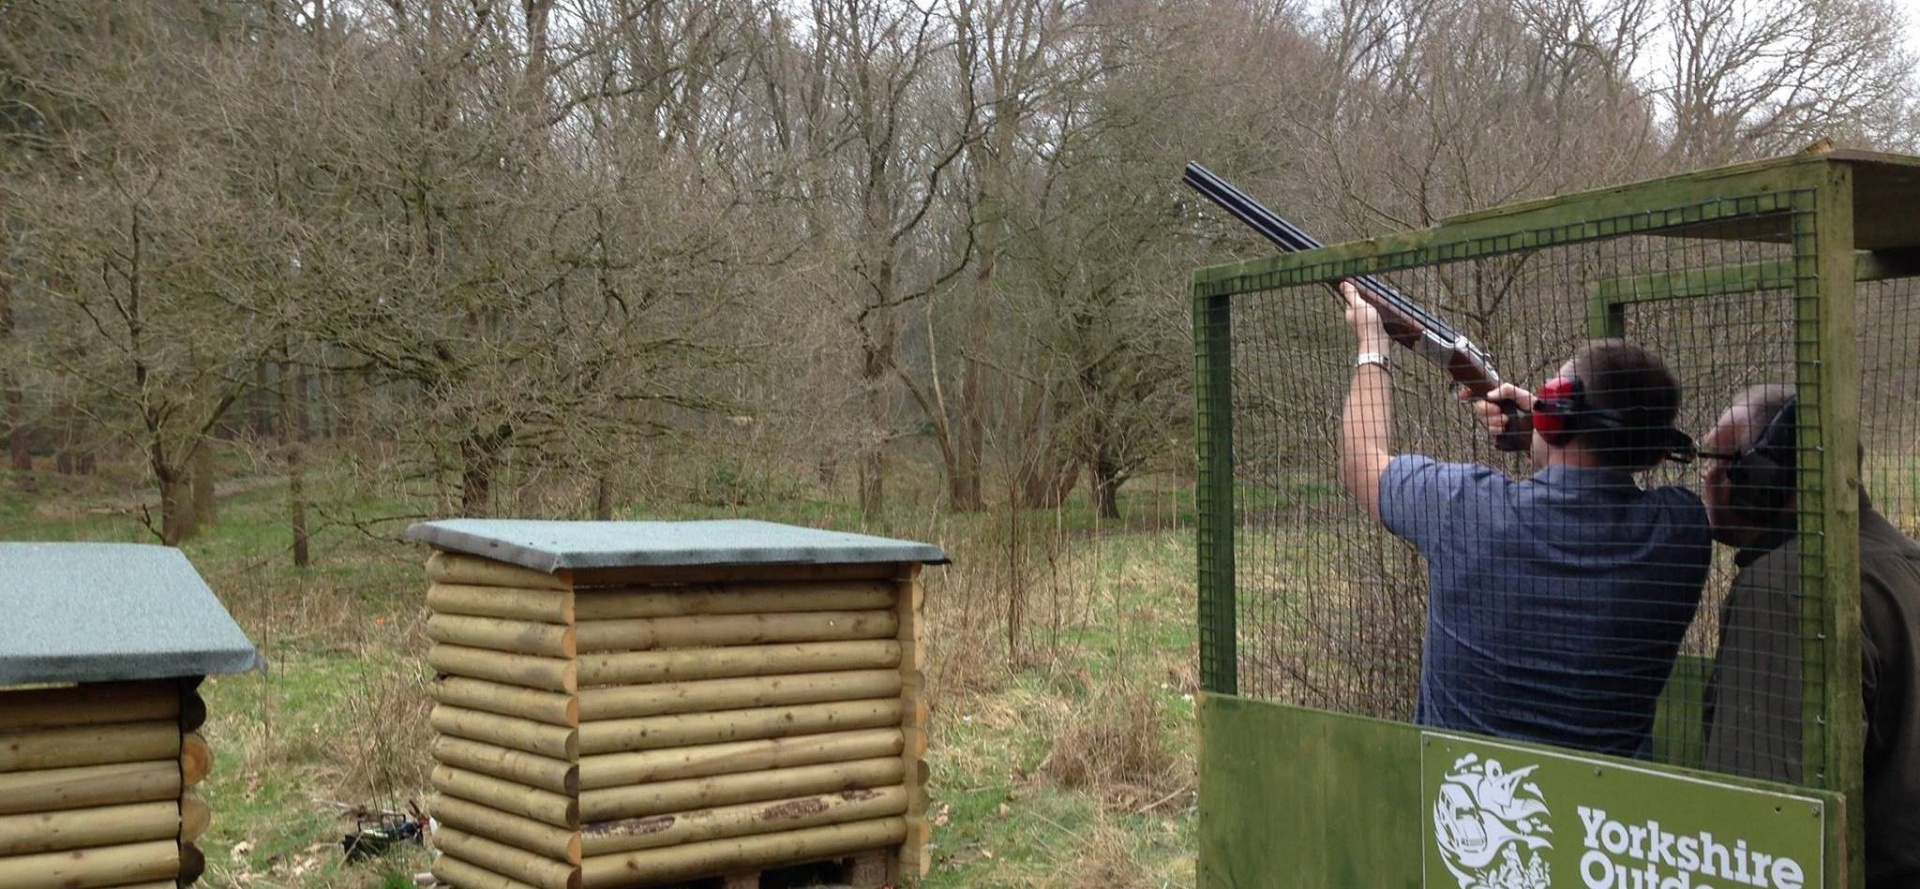 Clay Pigeon Shooting 25 Clays - Yorkshire